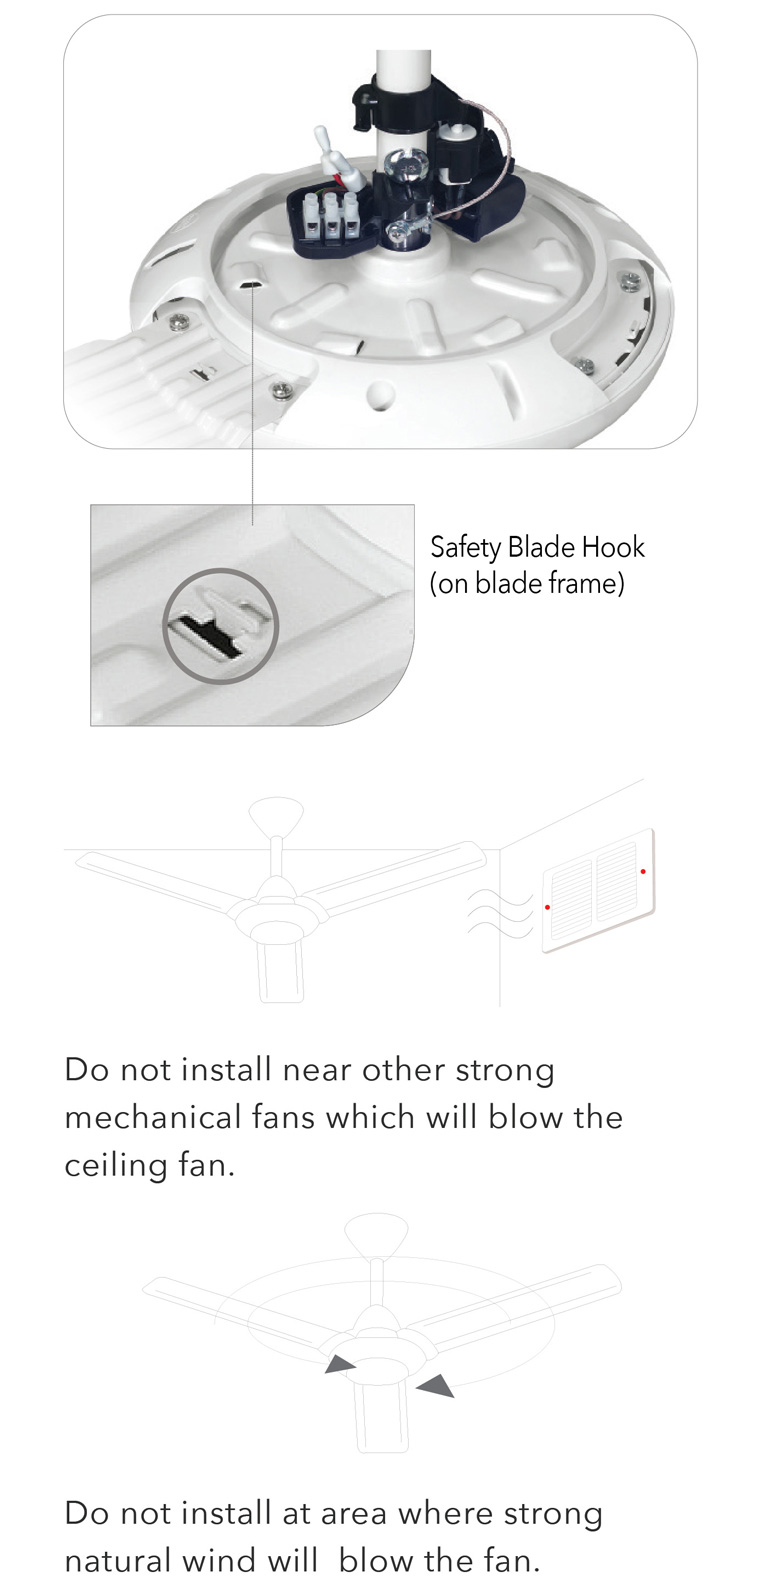 Do not install near other strong mechanical fans which will blow the ceiling fan.